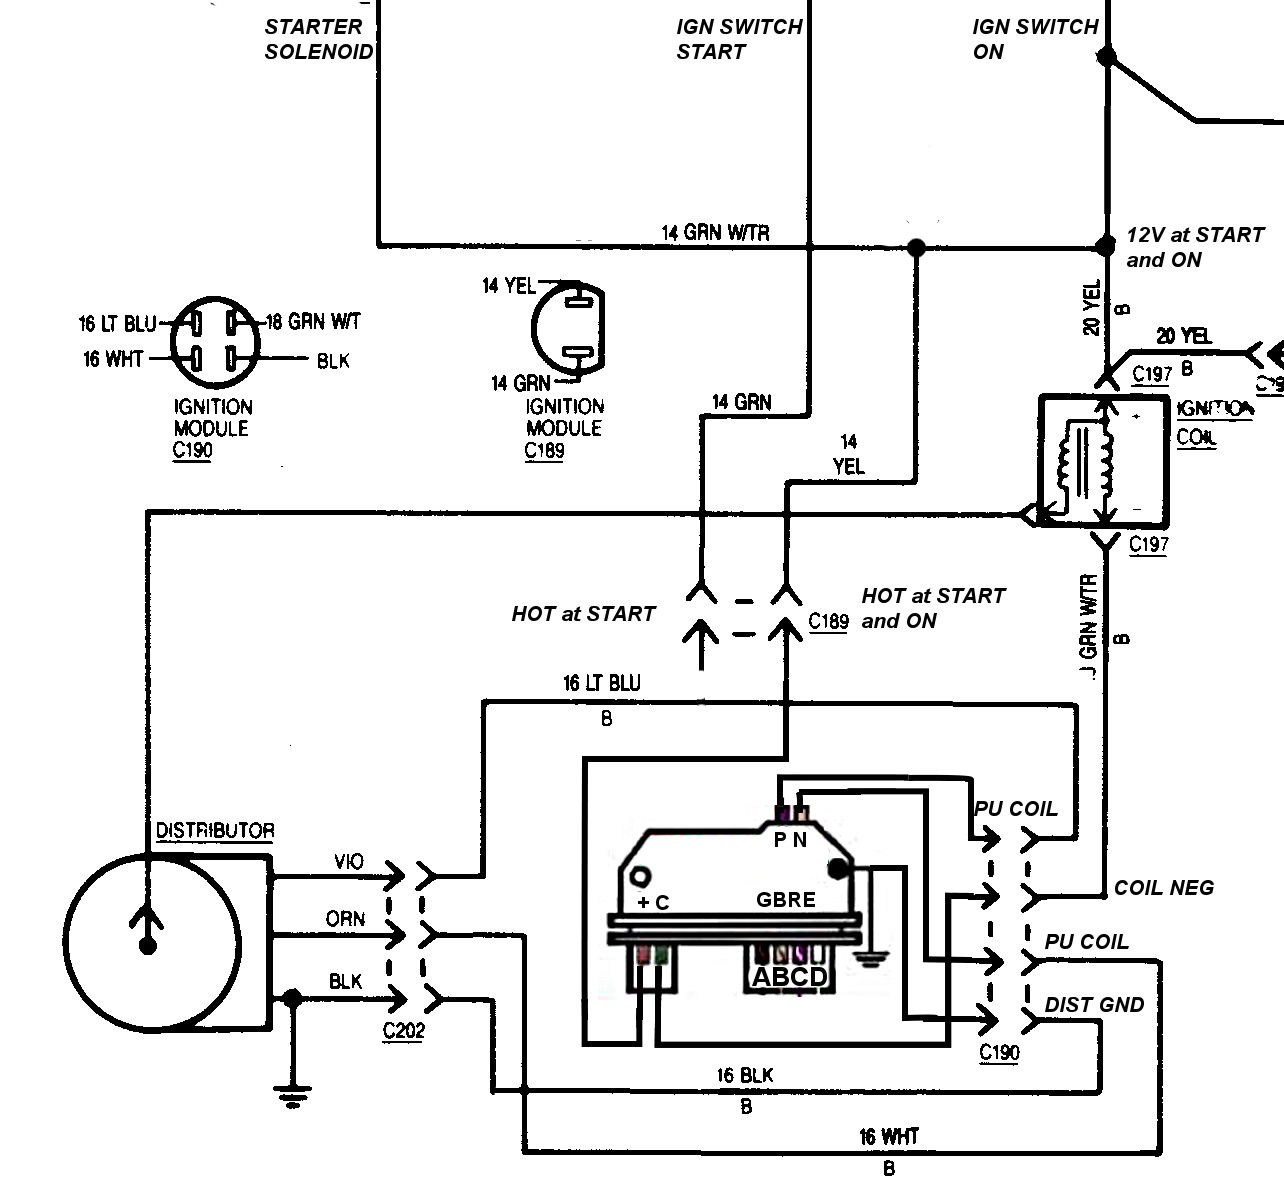 Wiring Diagram For Ignition : Troubled child gm tbi ignition wiring